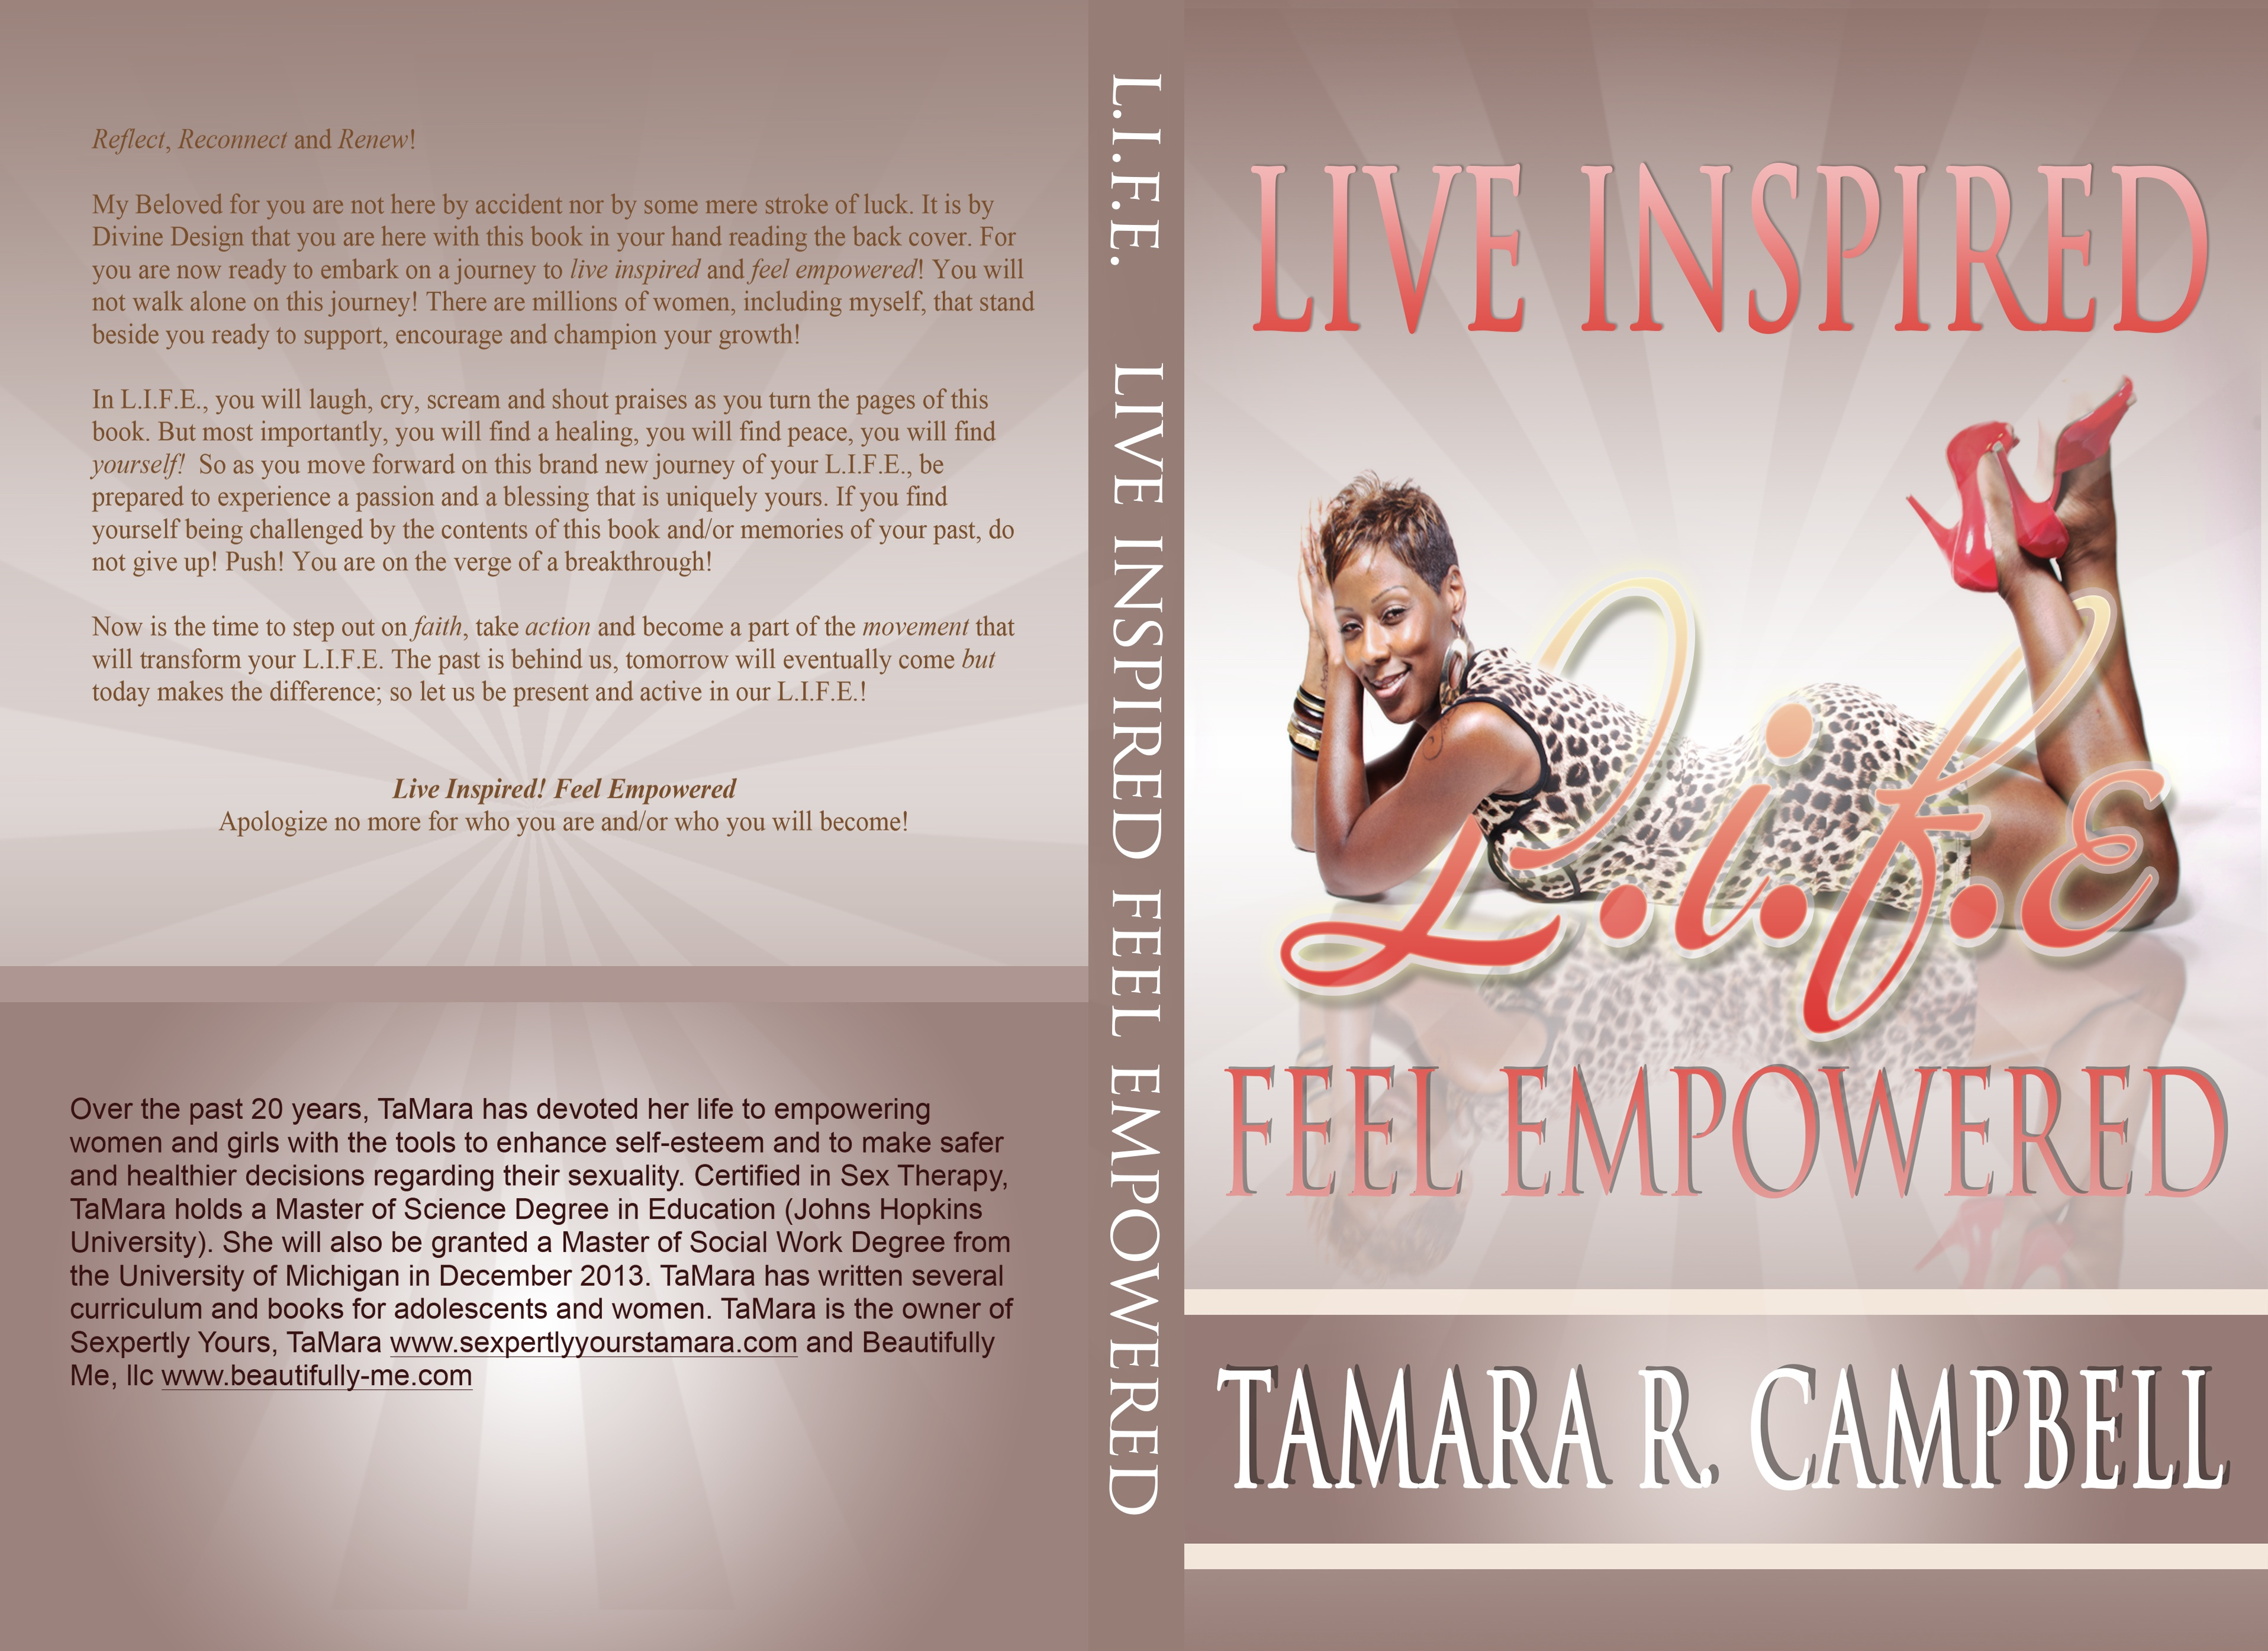 L.I.F.E. Live Inspired! Feel Empowered!